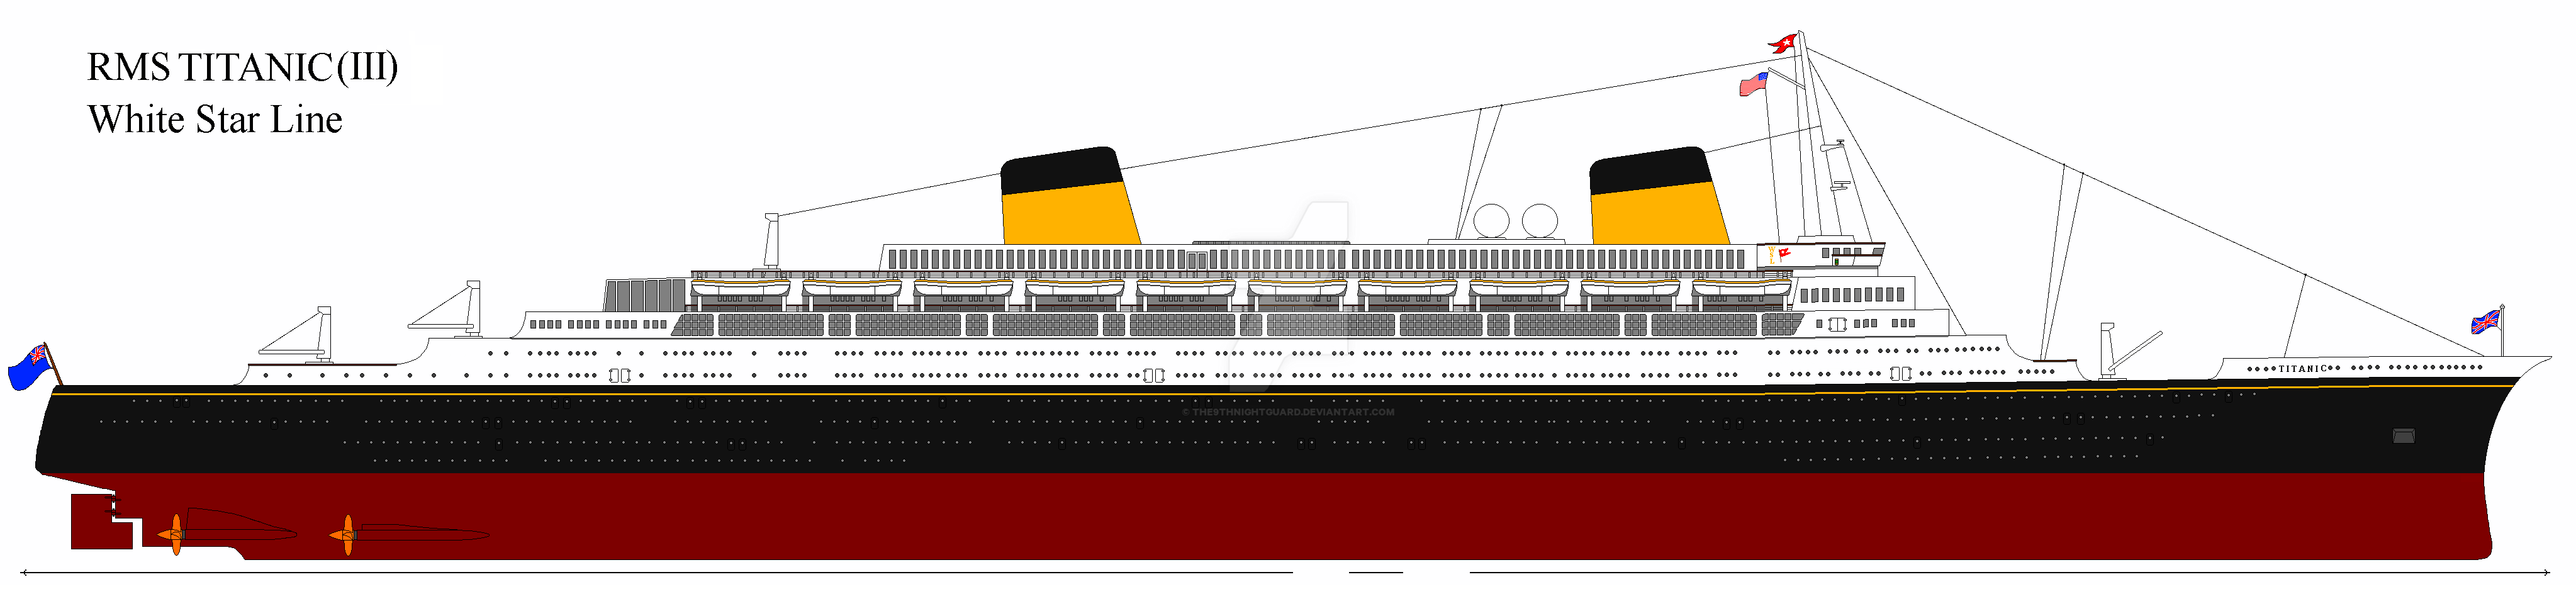 rms titanic  iii   1975 au  by the9thnightguard on deviantart